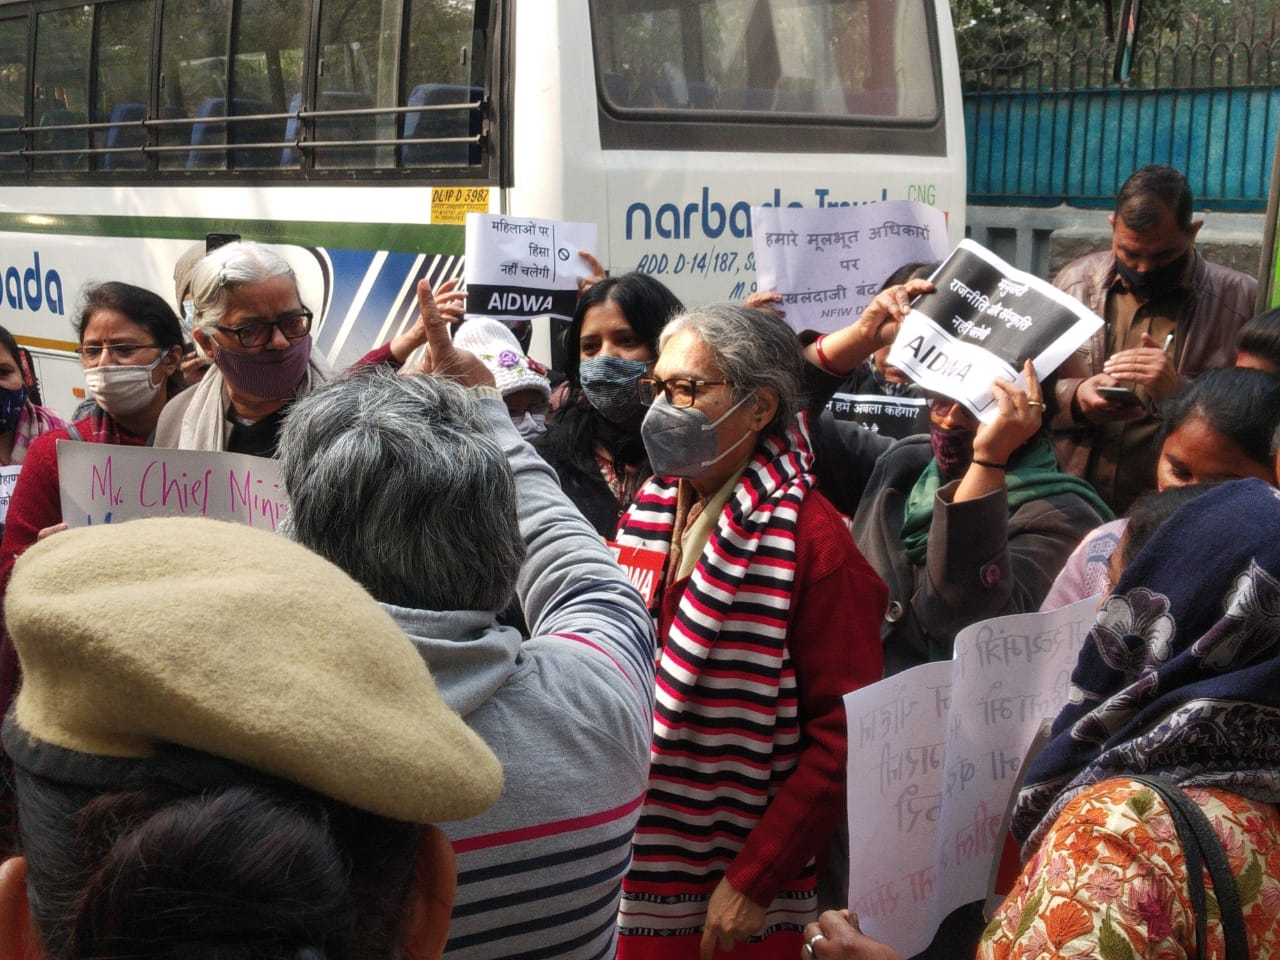 /Demonstration-of-women-at-MP-Bhavan-said-that-surveillance-in-the-name-of-security-is-not-acceptable